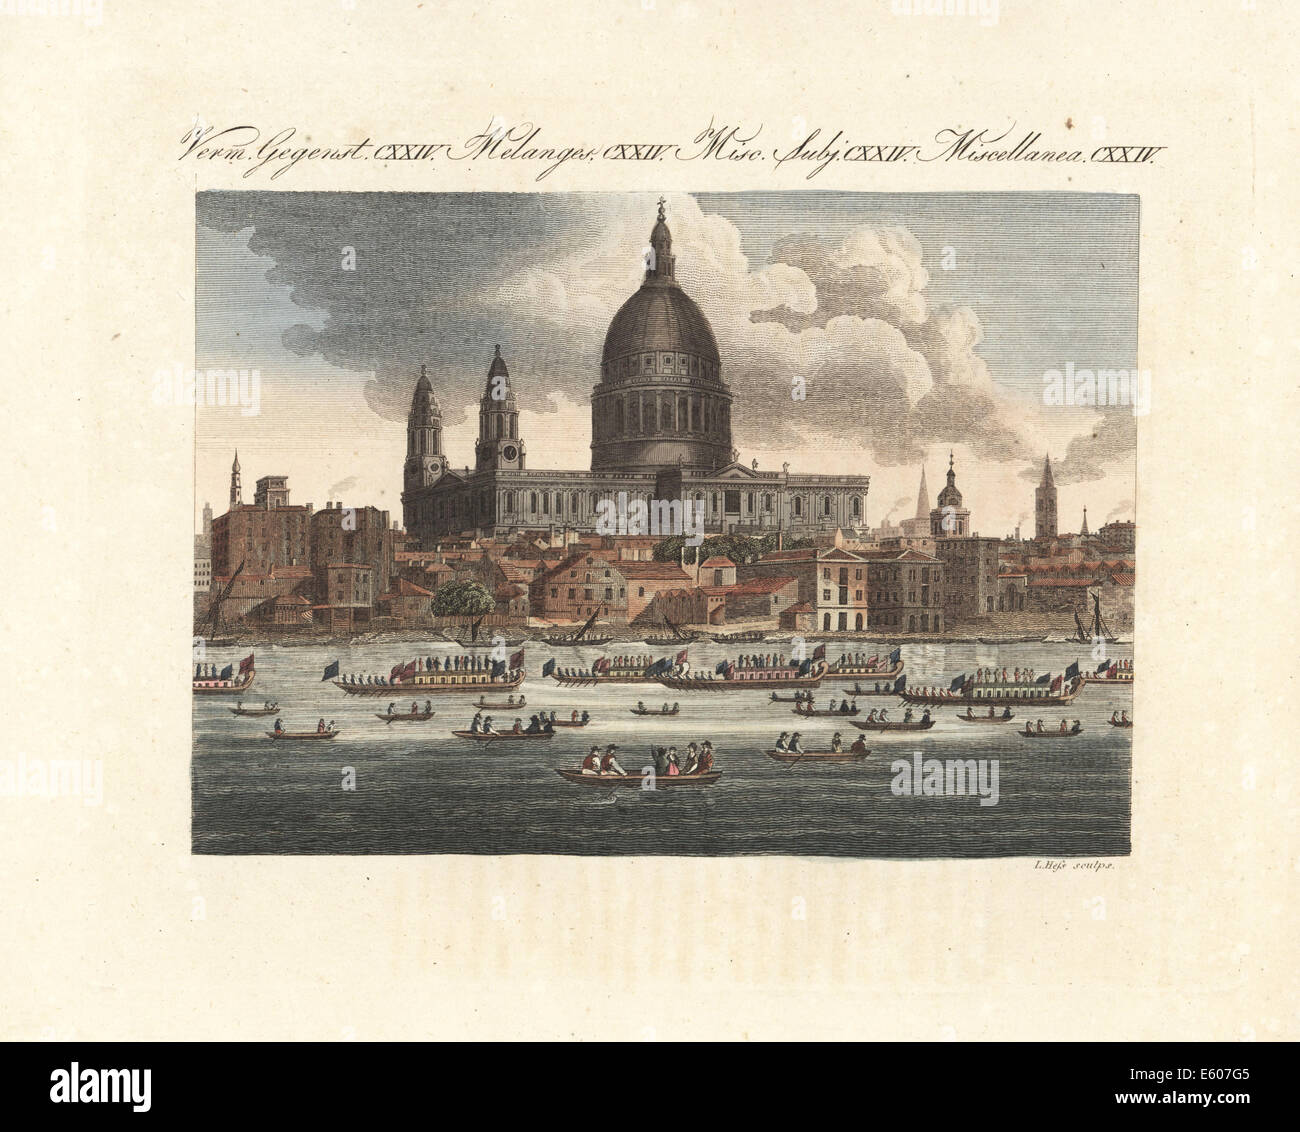 The Lord Mayor of London's parade float on the Thames, 18th century. - Stock Image